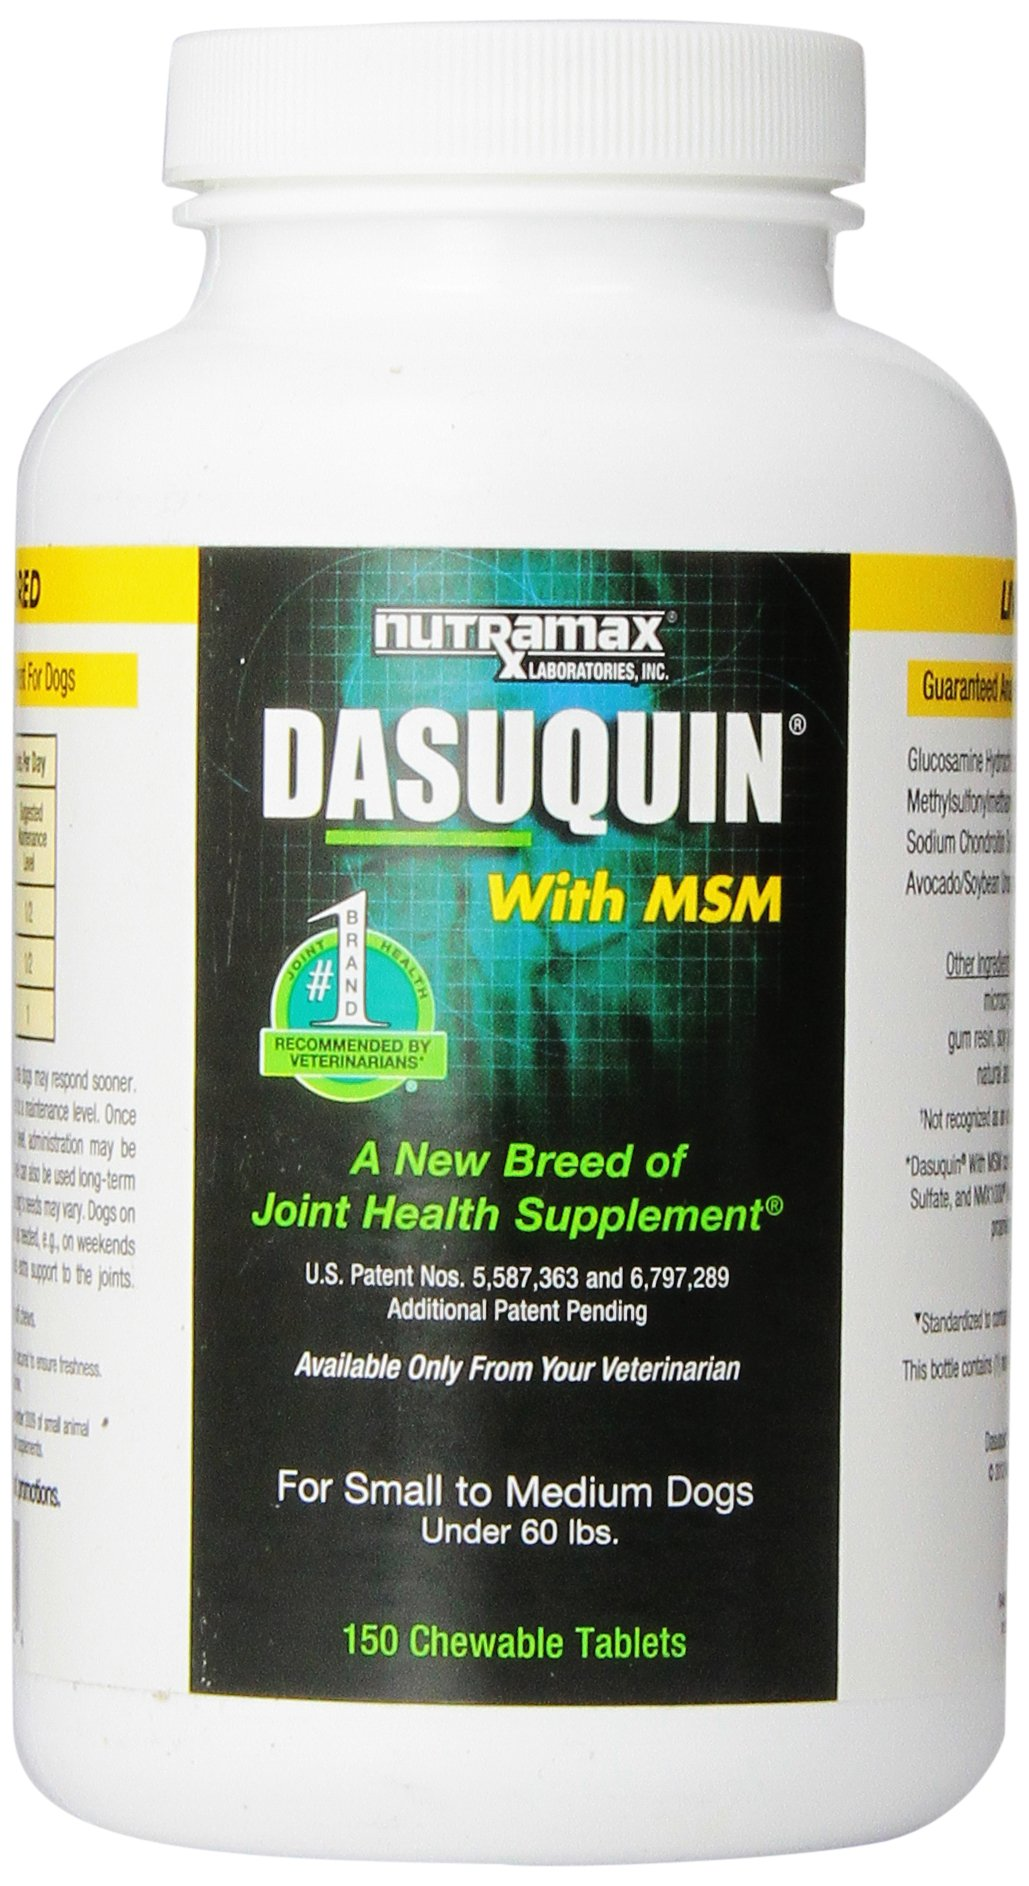 Nutramax Dasuquin with MSM Chewables, Small/Medium Dog, 150 Count by Nutramax Laboratories (Image #1)